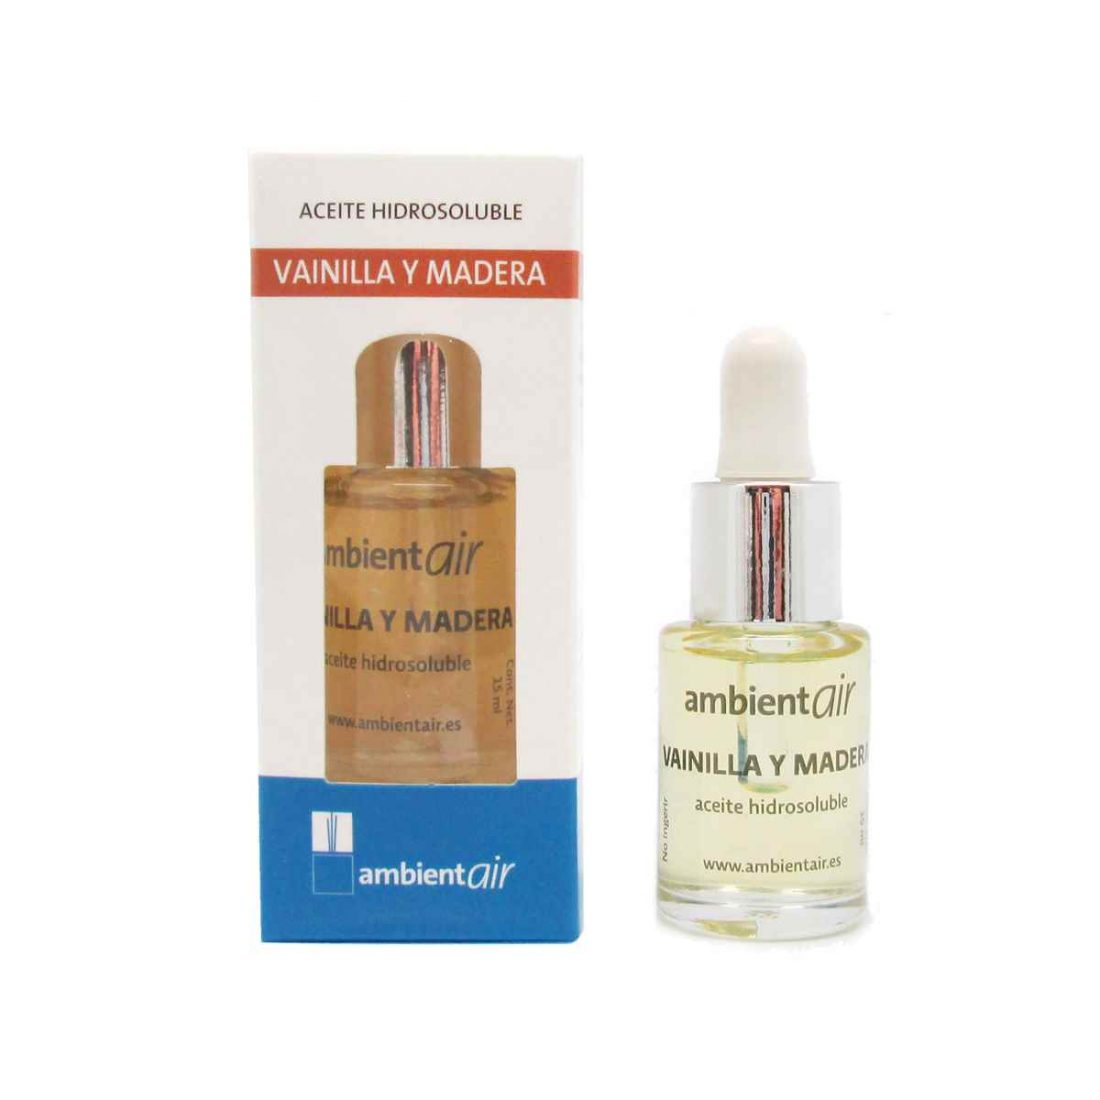 Ambientair Classic Aceite esencial Aroma Vainilla Madera 15ml